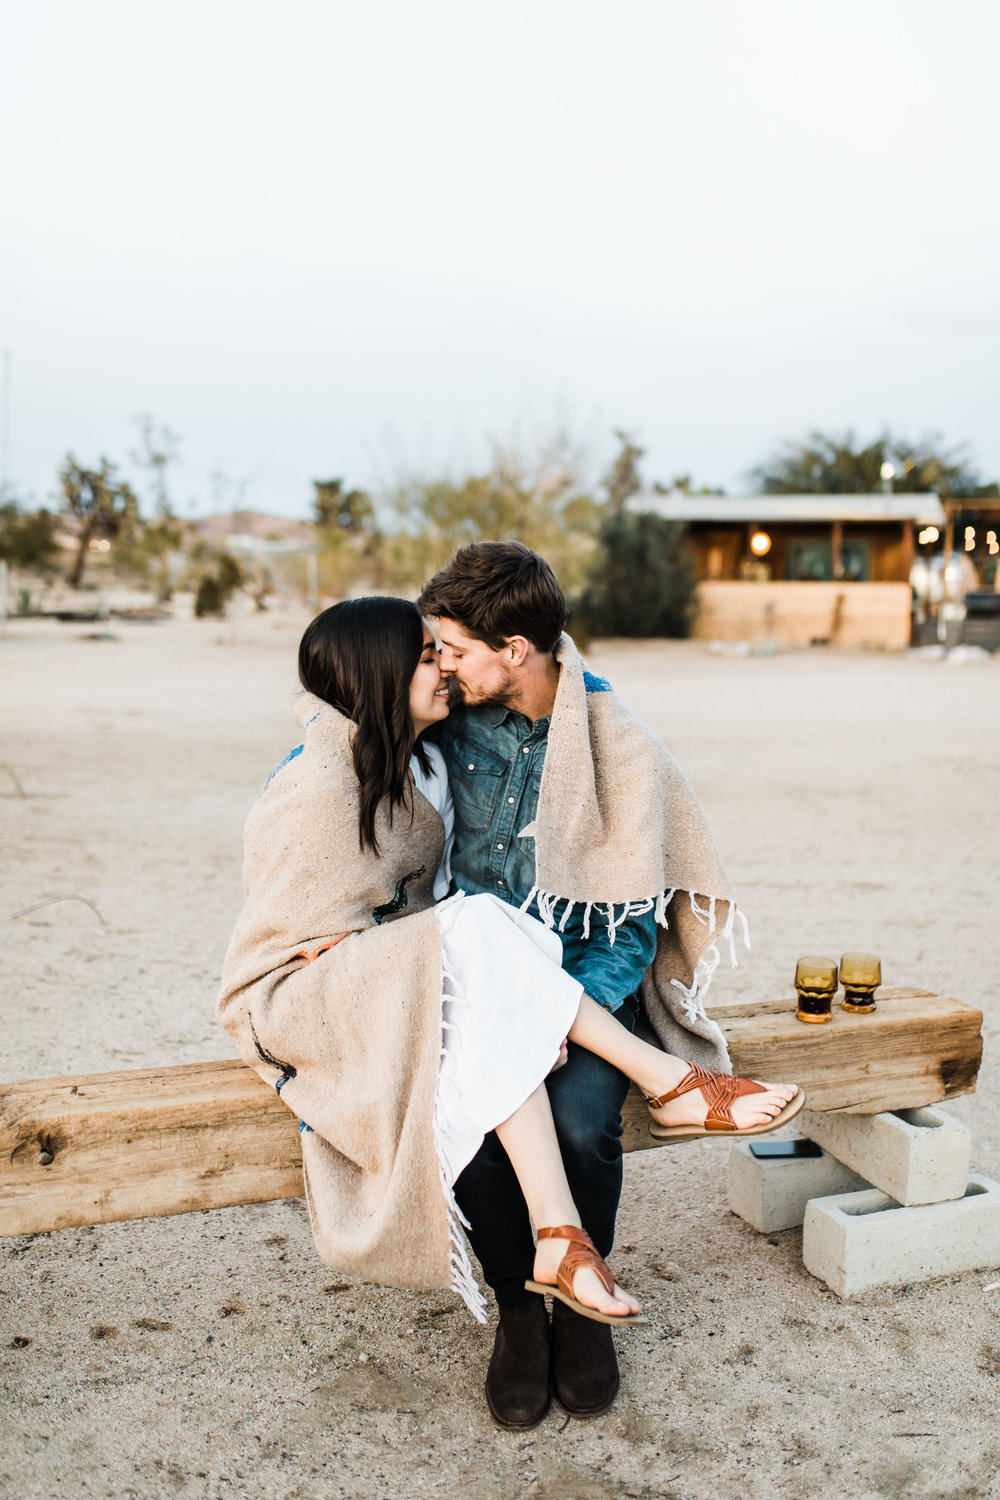 Natalie&AJ-Joshua-Tree-Acres-Airstream-Engagement-Session-Clarisse-Rae-Southern-California-Wedding-Photographer_32